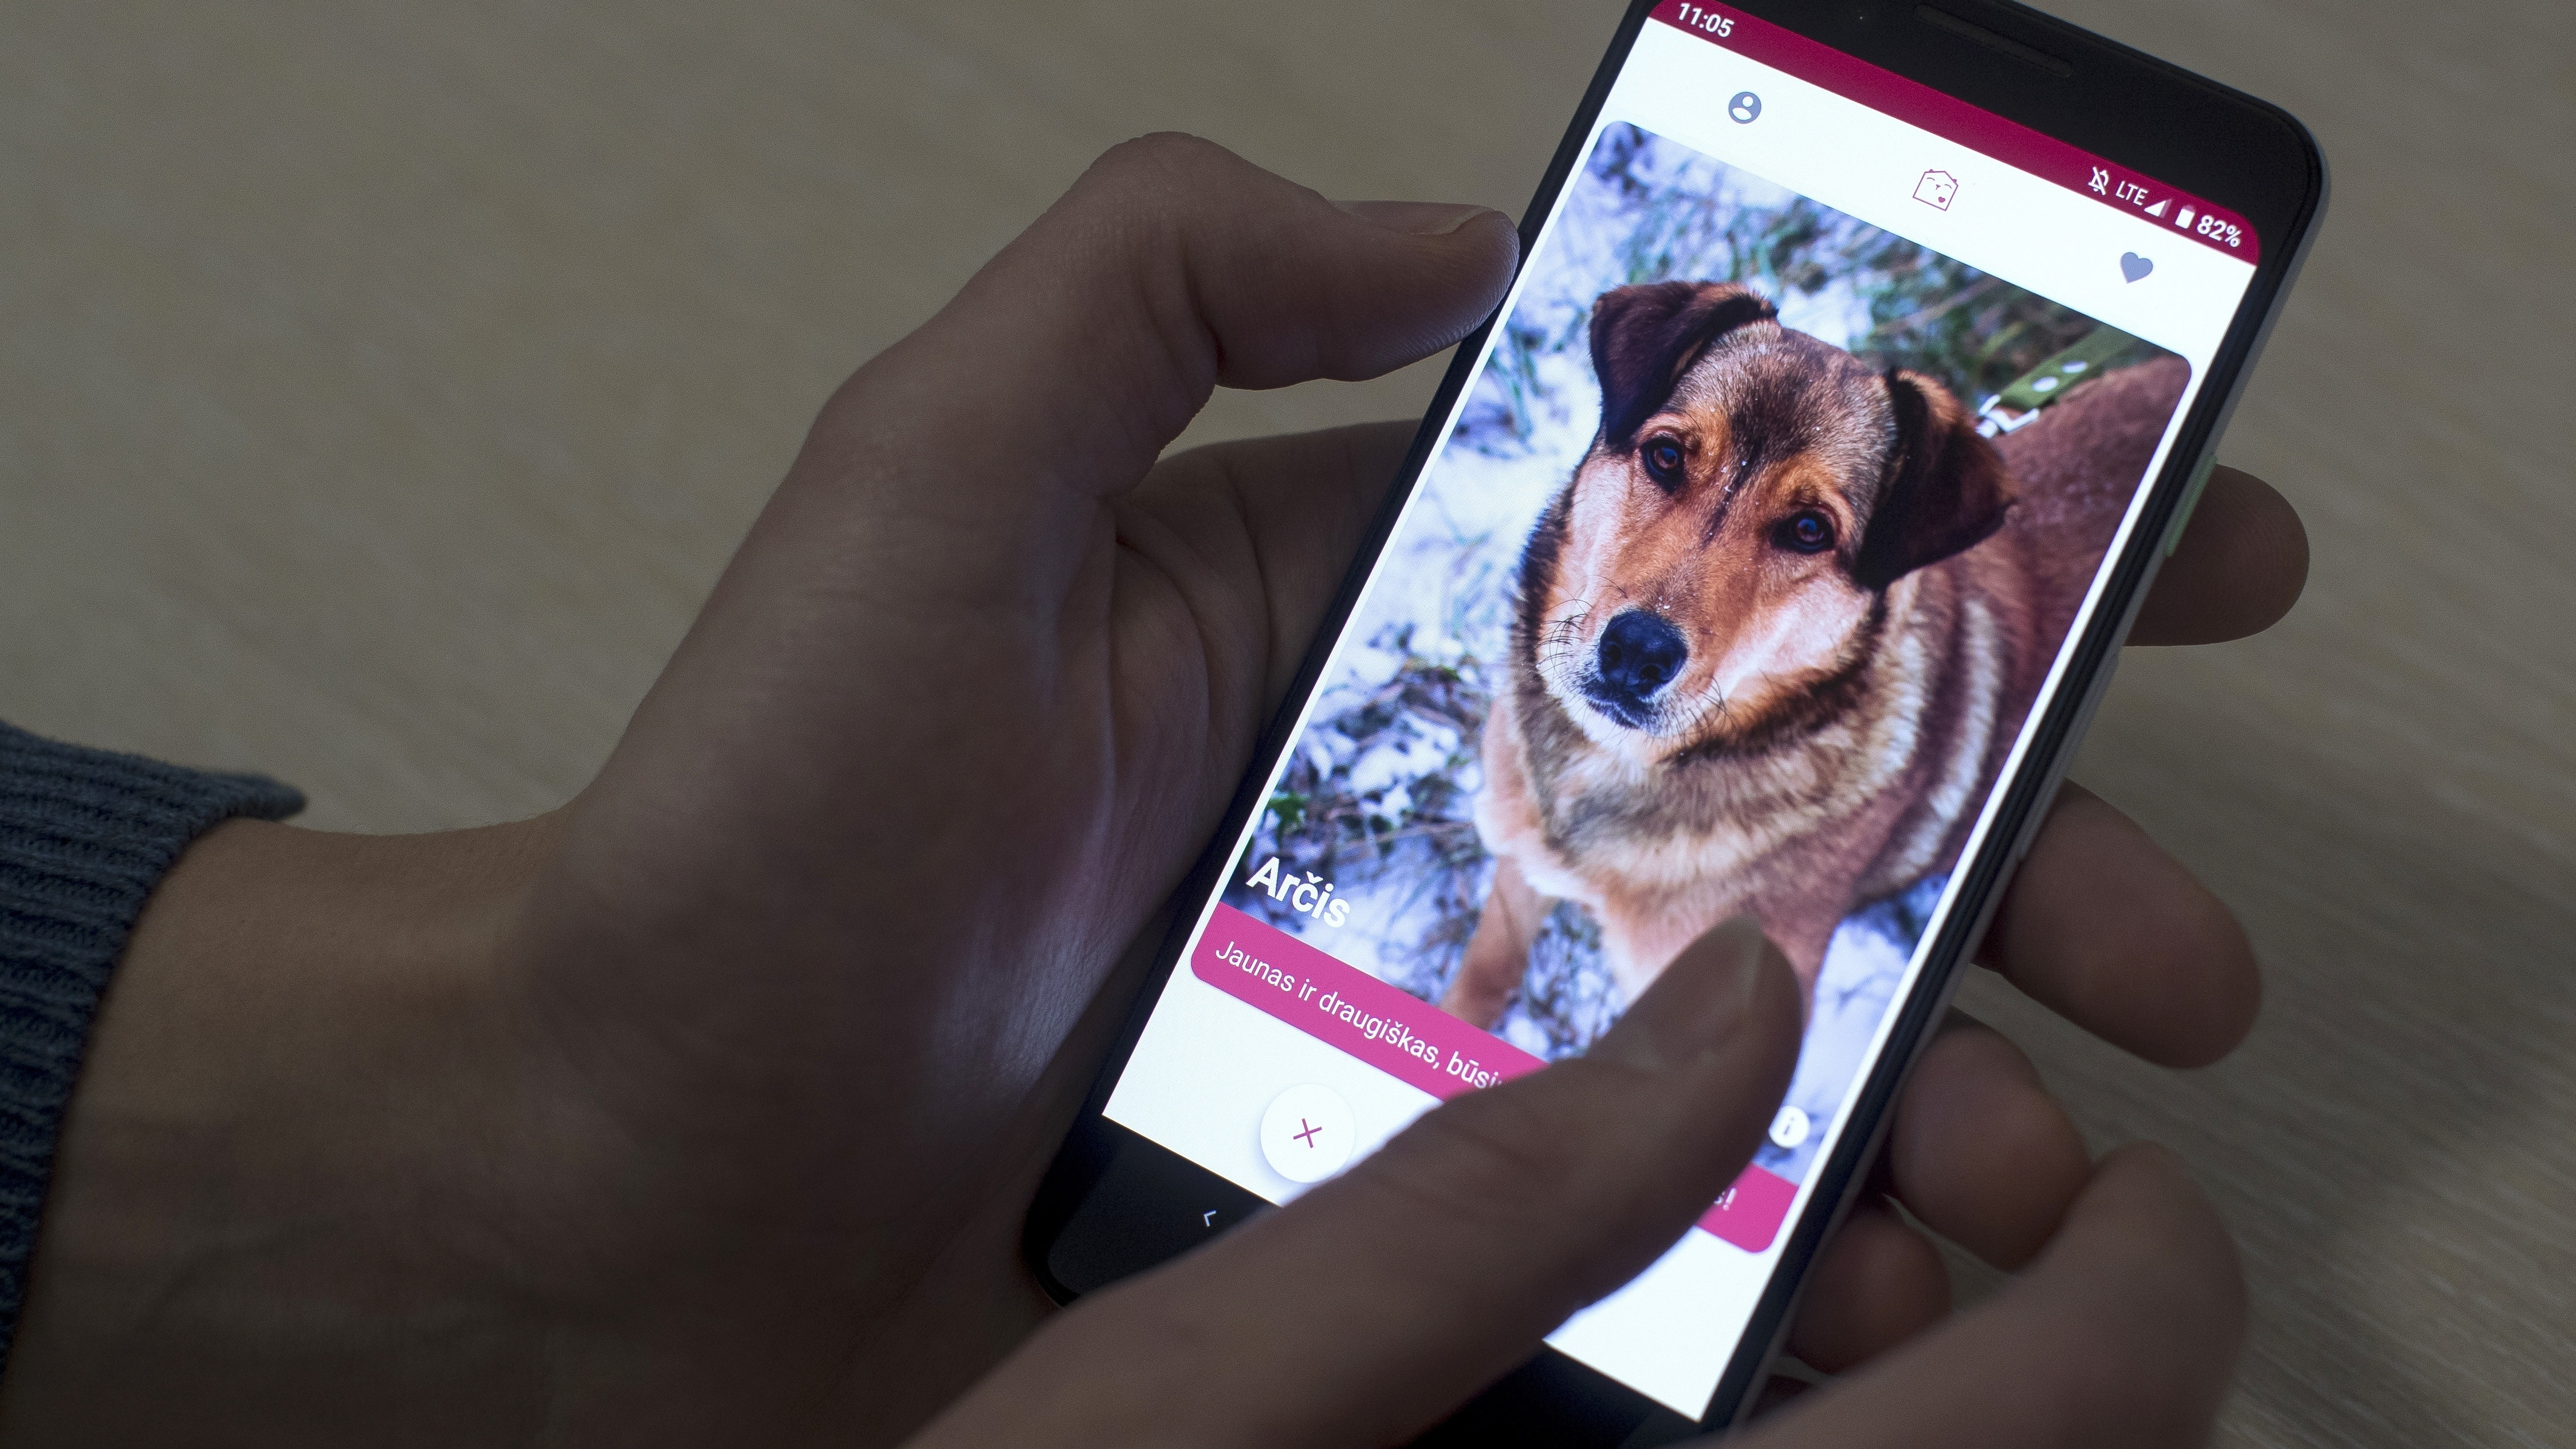 GetPet - Tinder-style app matching dogs to potential owners